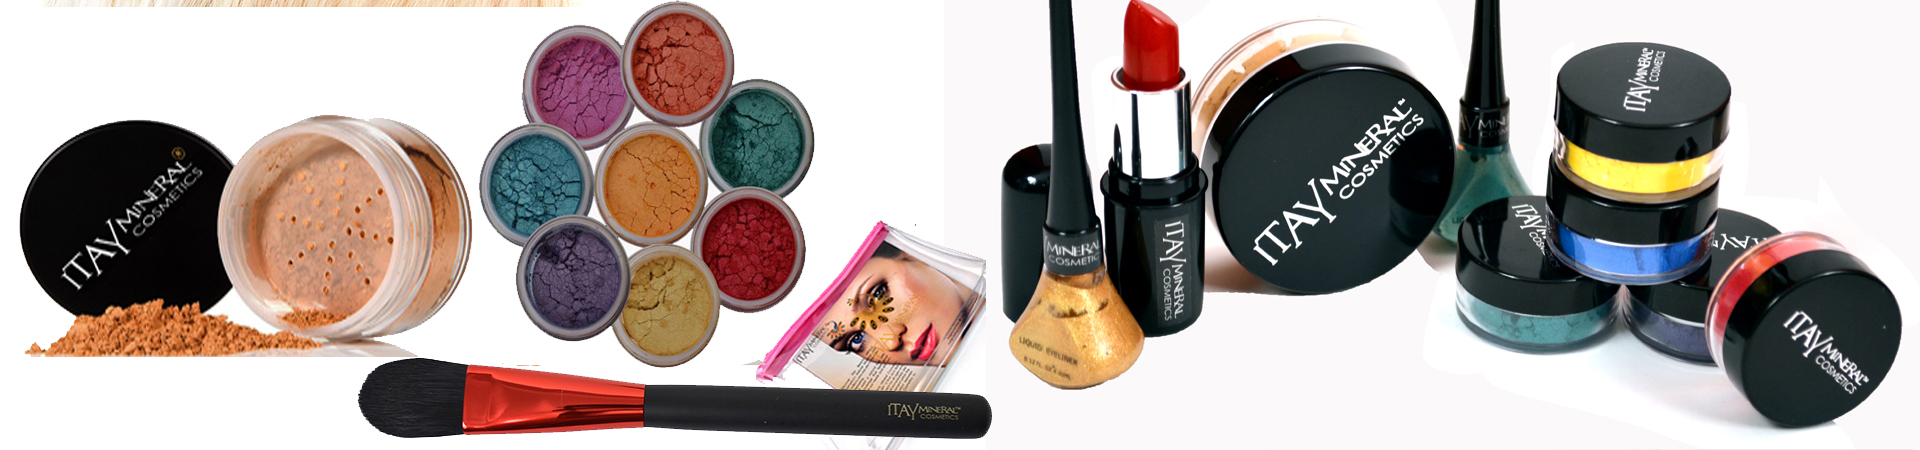 mineral-cosmetics-collections.jpg